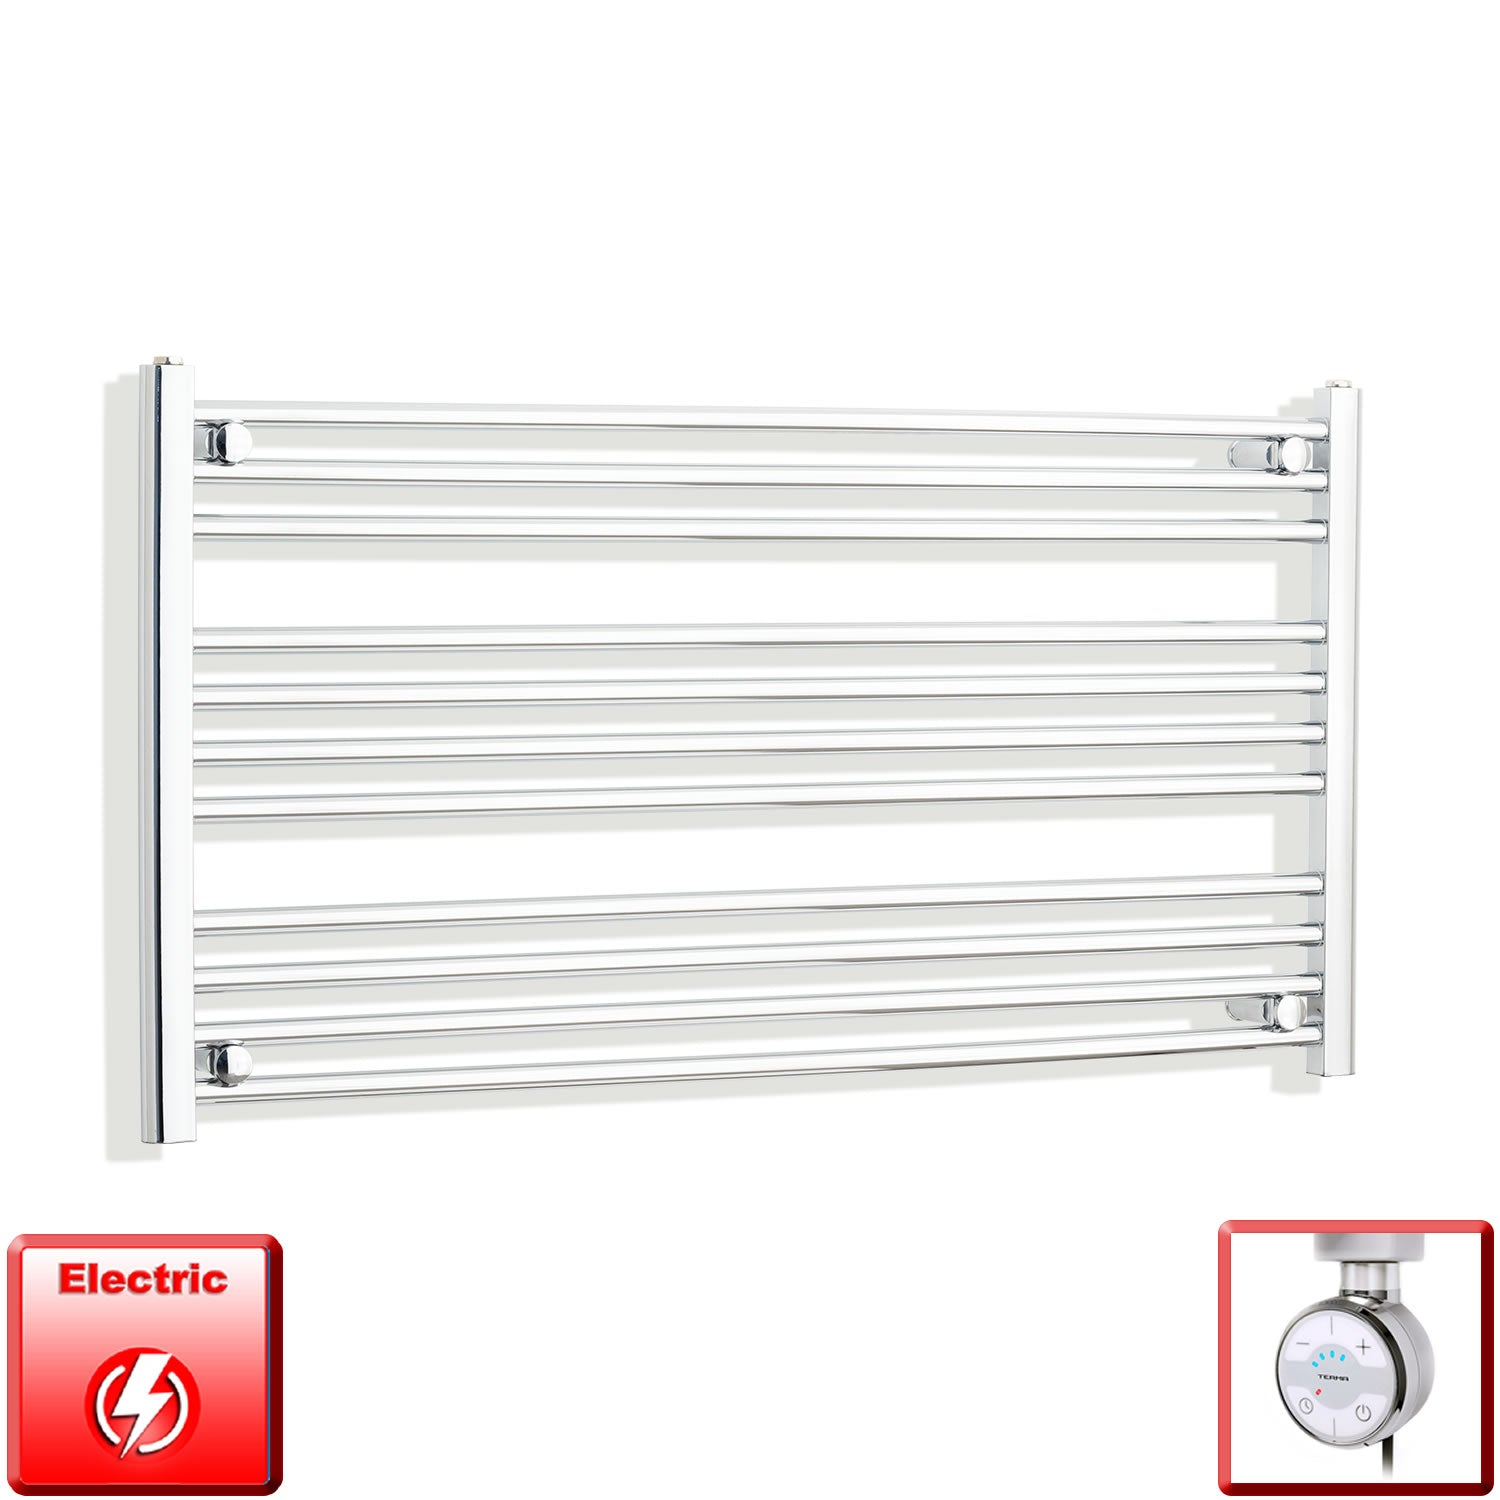 1300mm Wide 600mm High Pre-Filled Chrome Electric Towel Rail Radiator With Thermostatic MOA Element